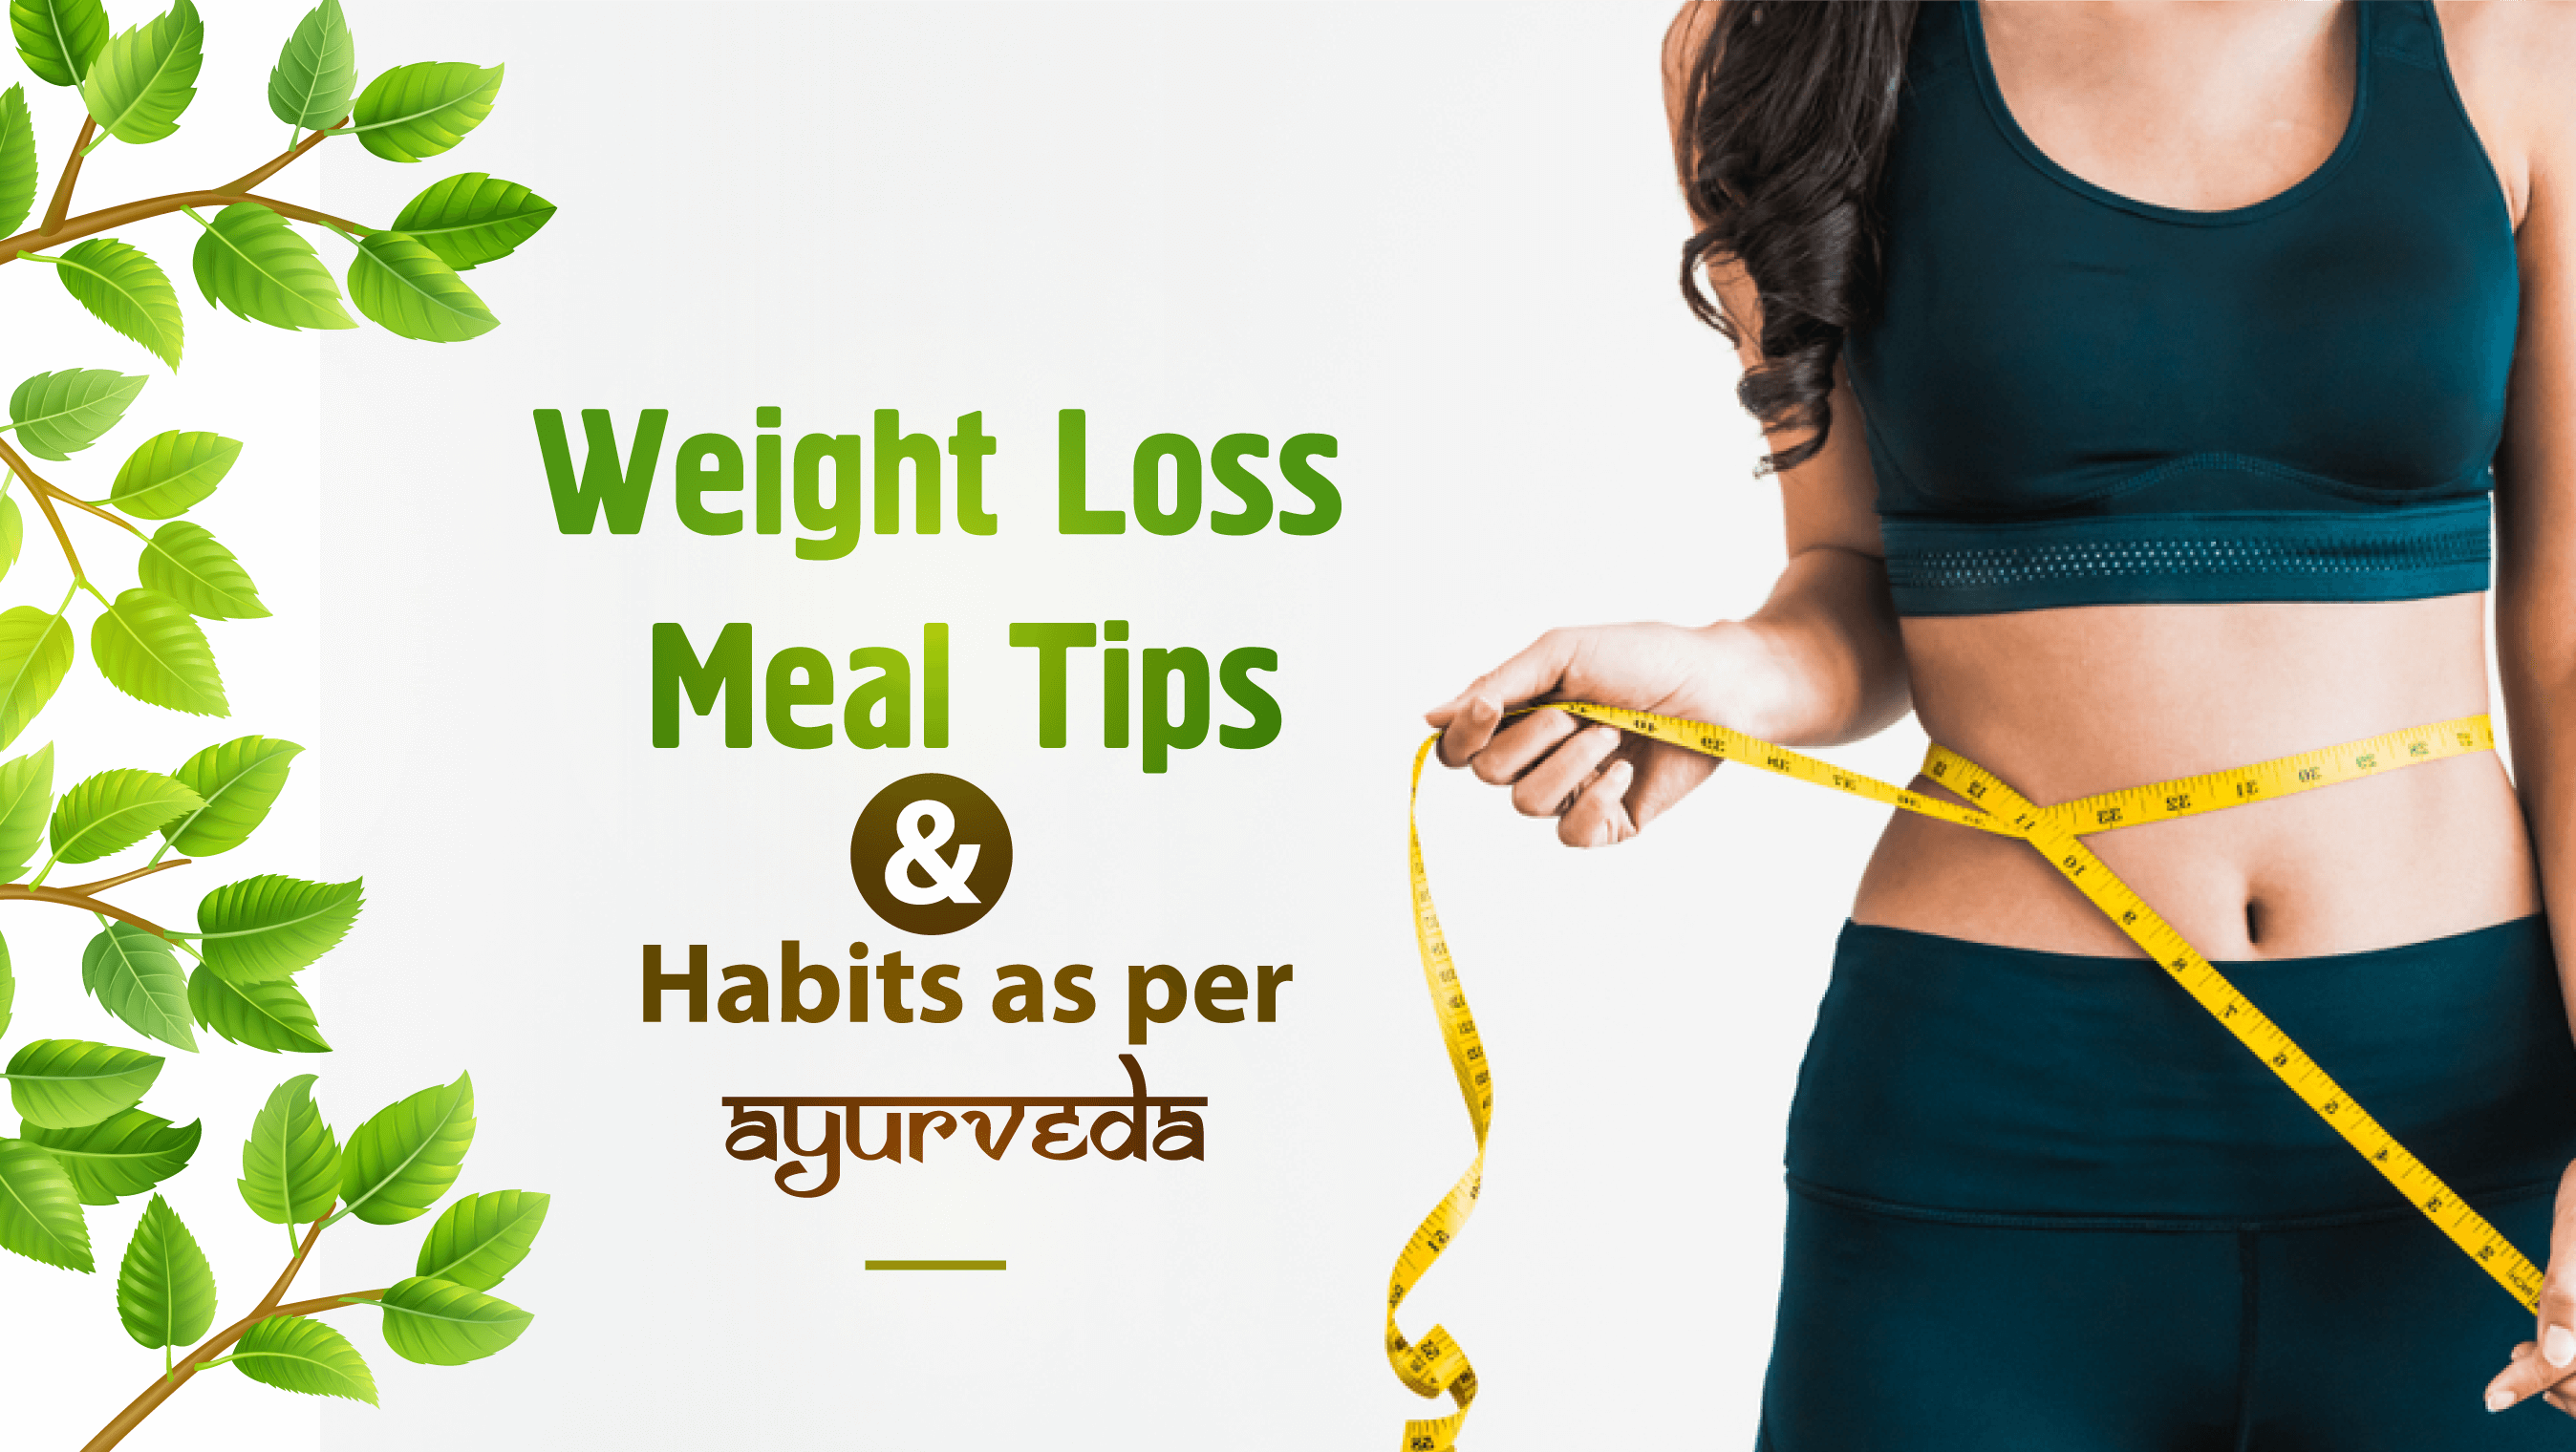 Healthy Habits that Speed Up Weight Loss, as per Ayurveda